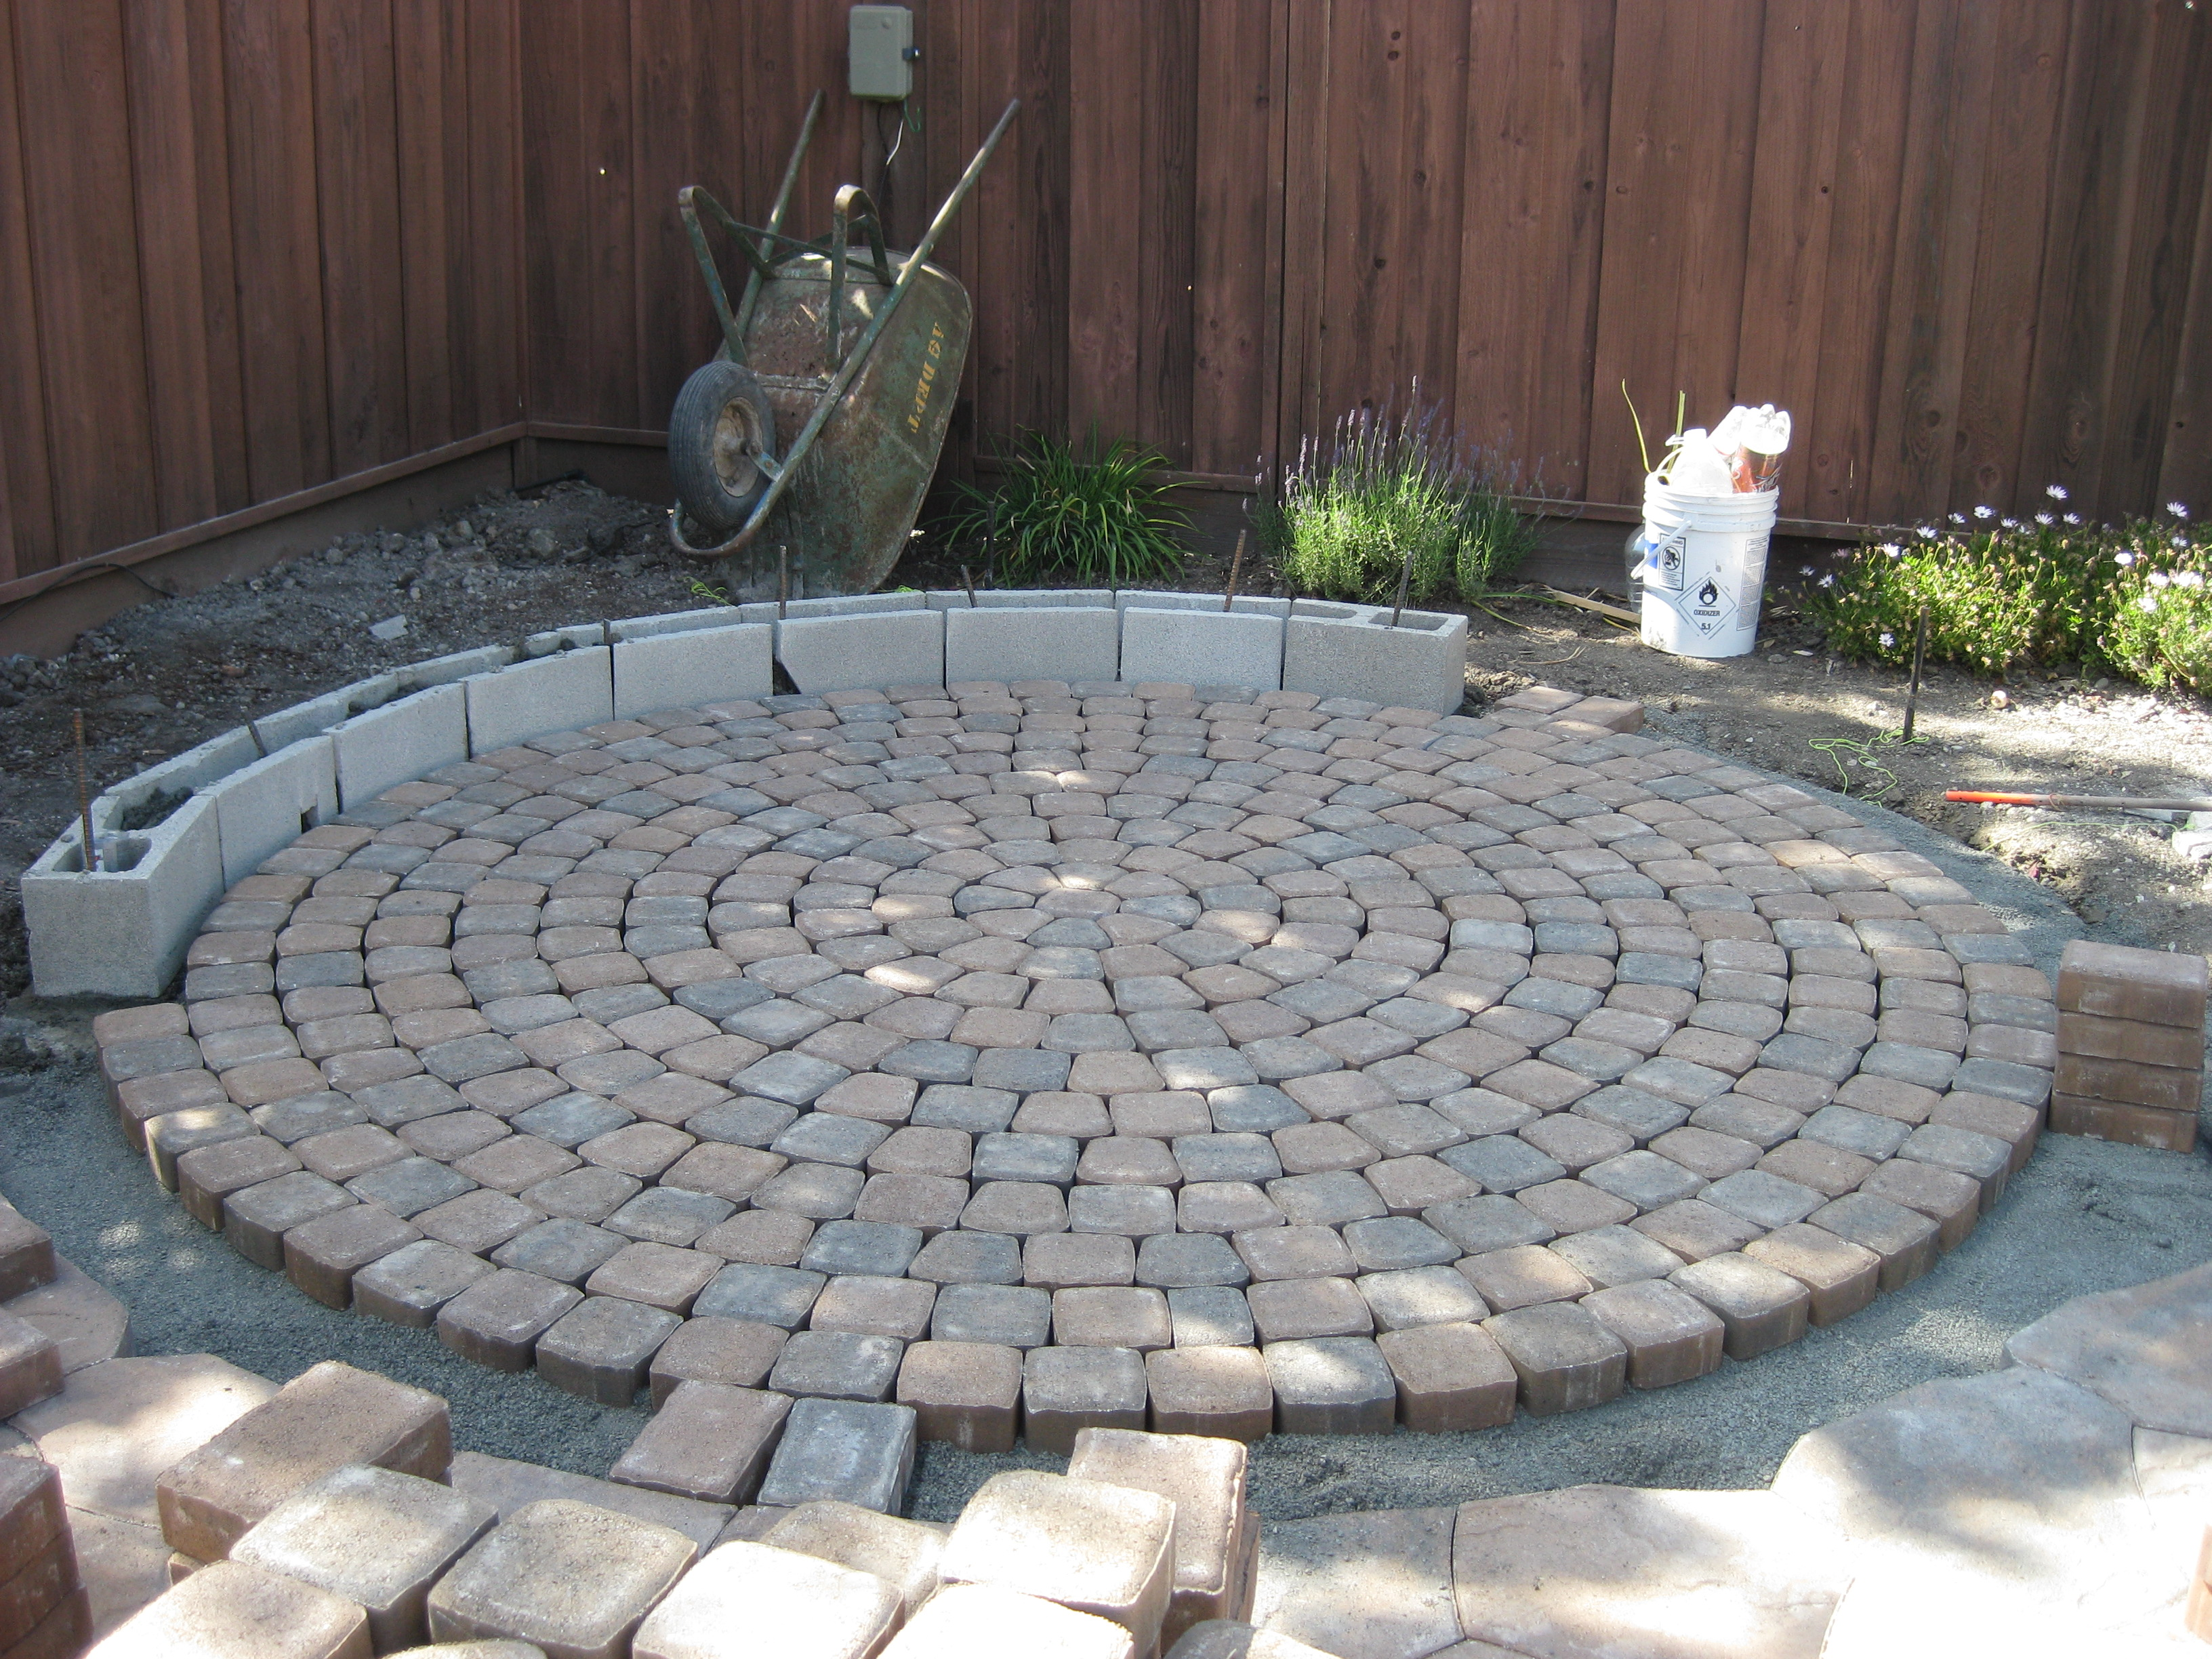 Admirable pavers home depot for outdoor flooring home pavers